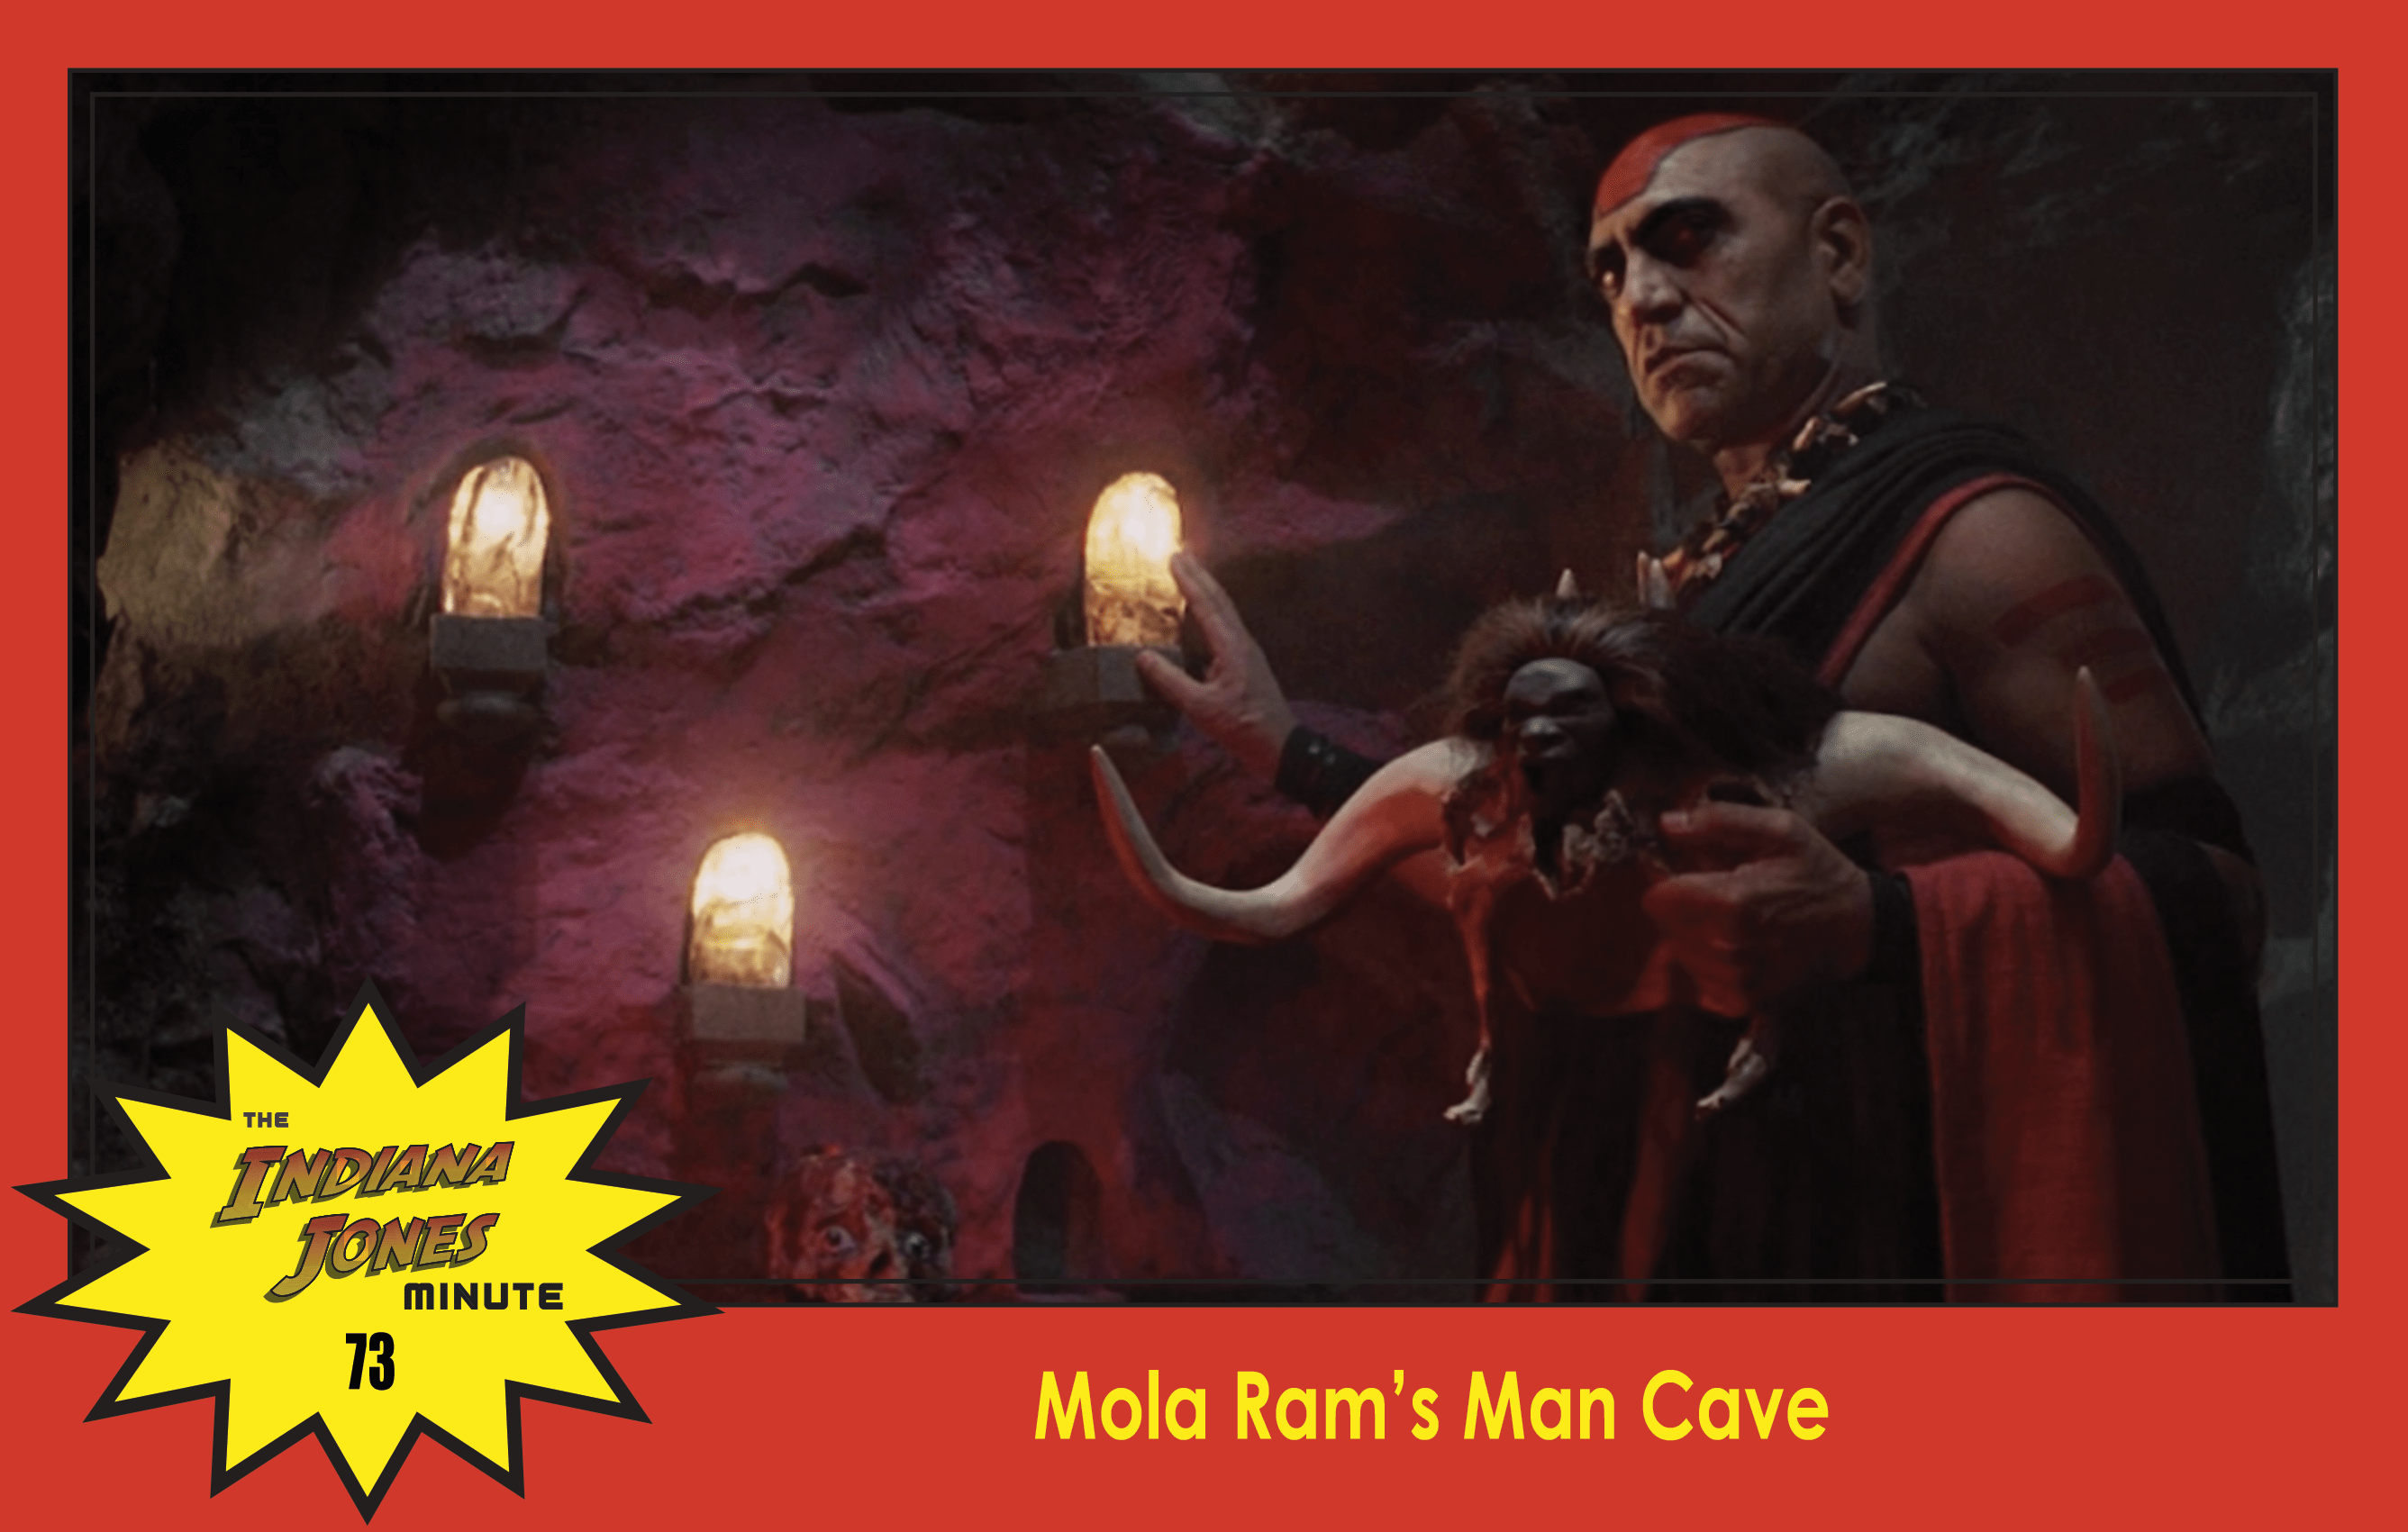 Temple of Doom Minute 73: Mola Ram's Man Cave